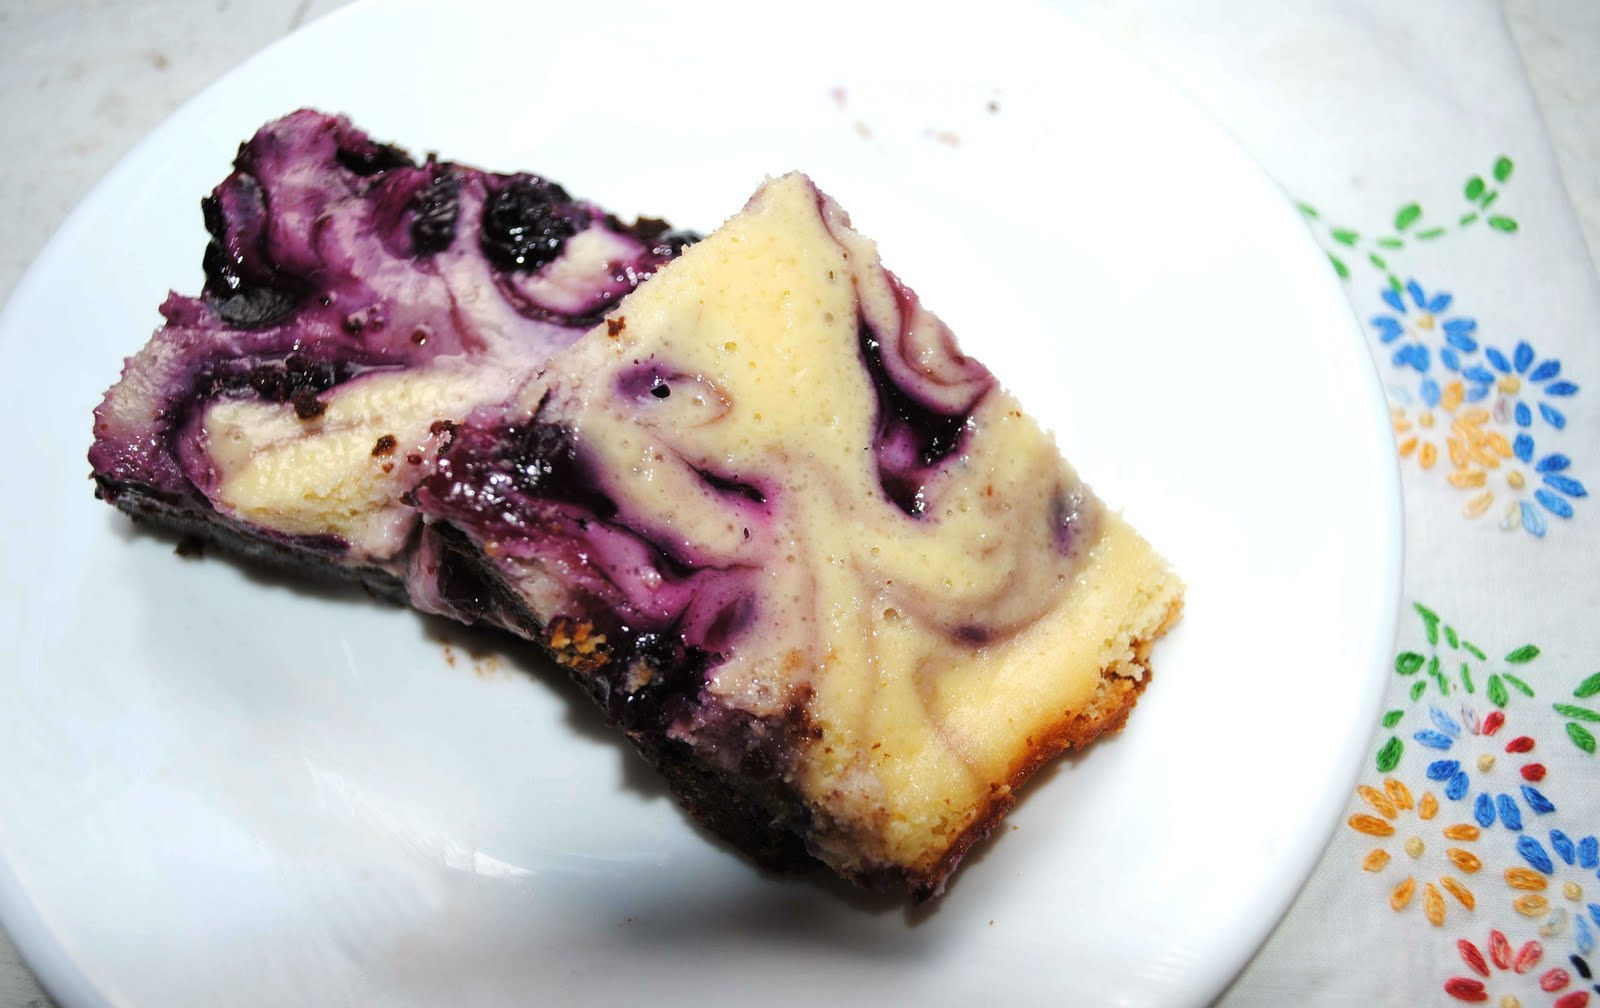 Blueberry+Cheesecake+bars.jpg